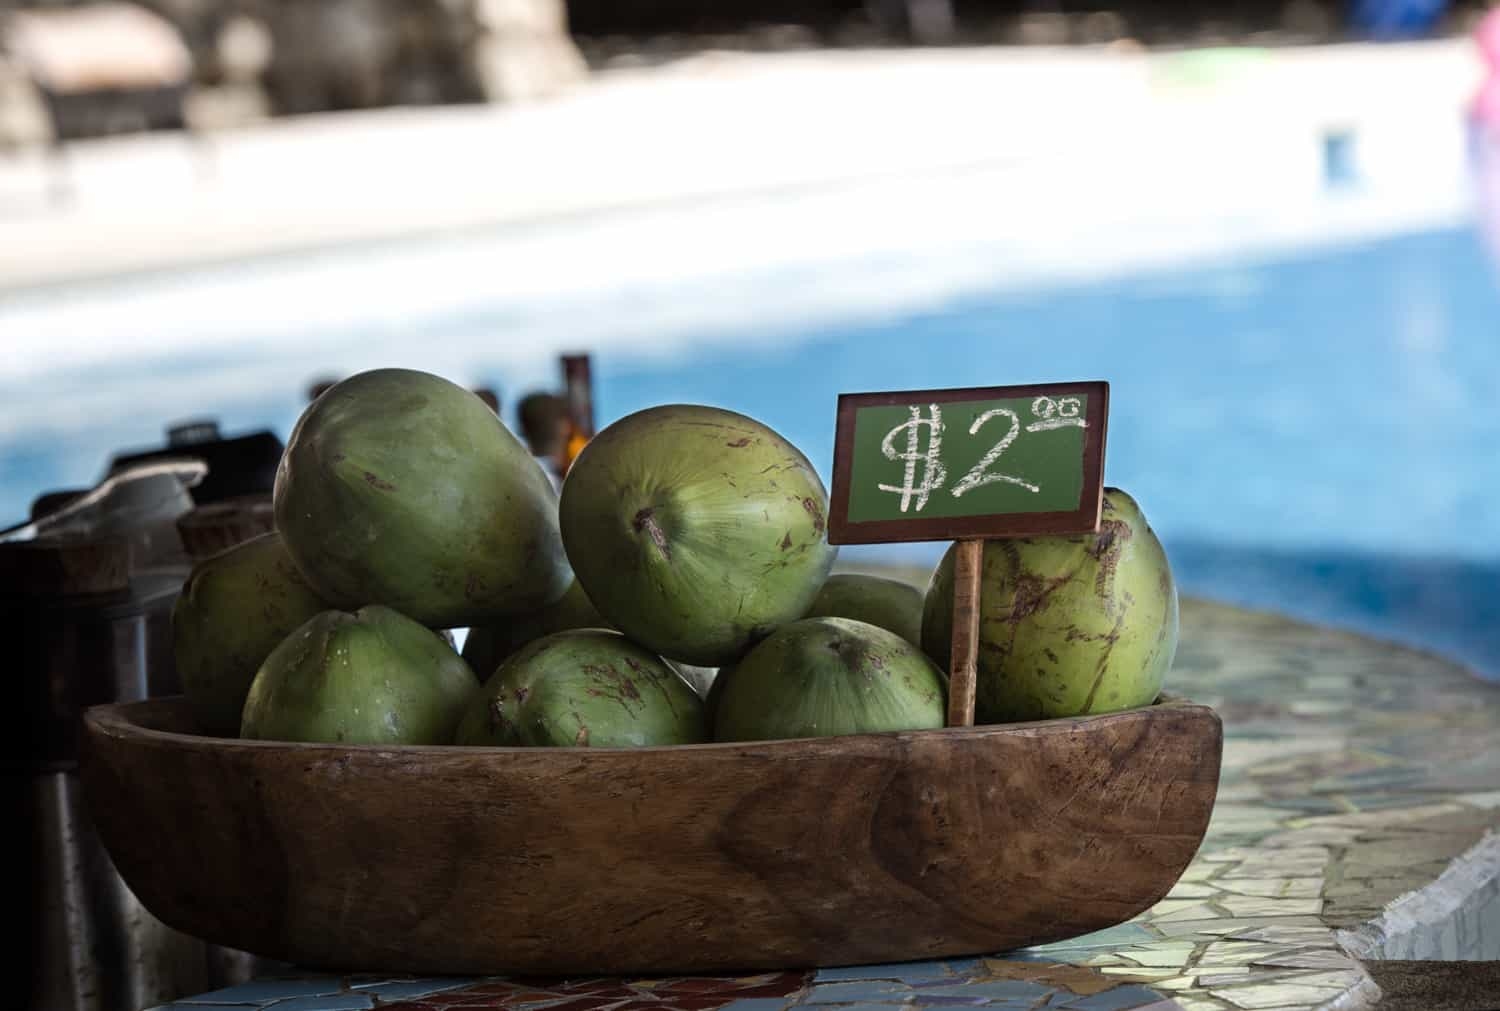 Pipas for sale at the submerged bar at Los Cocos Bar & Pool located at the beach area.